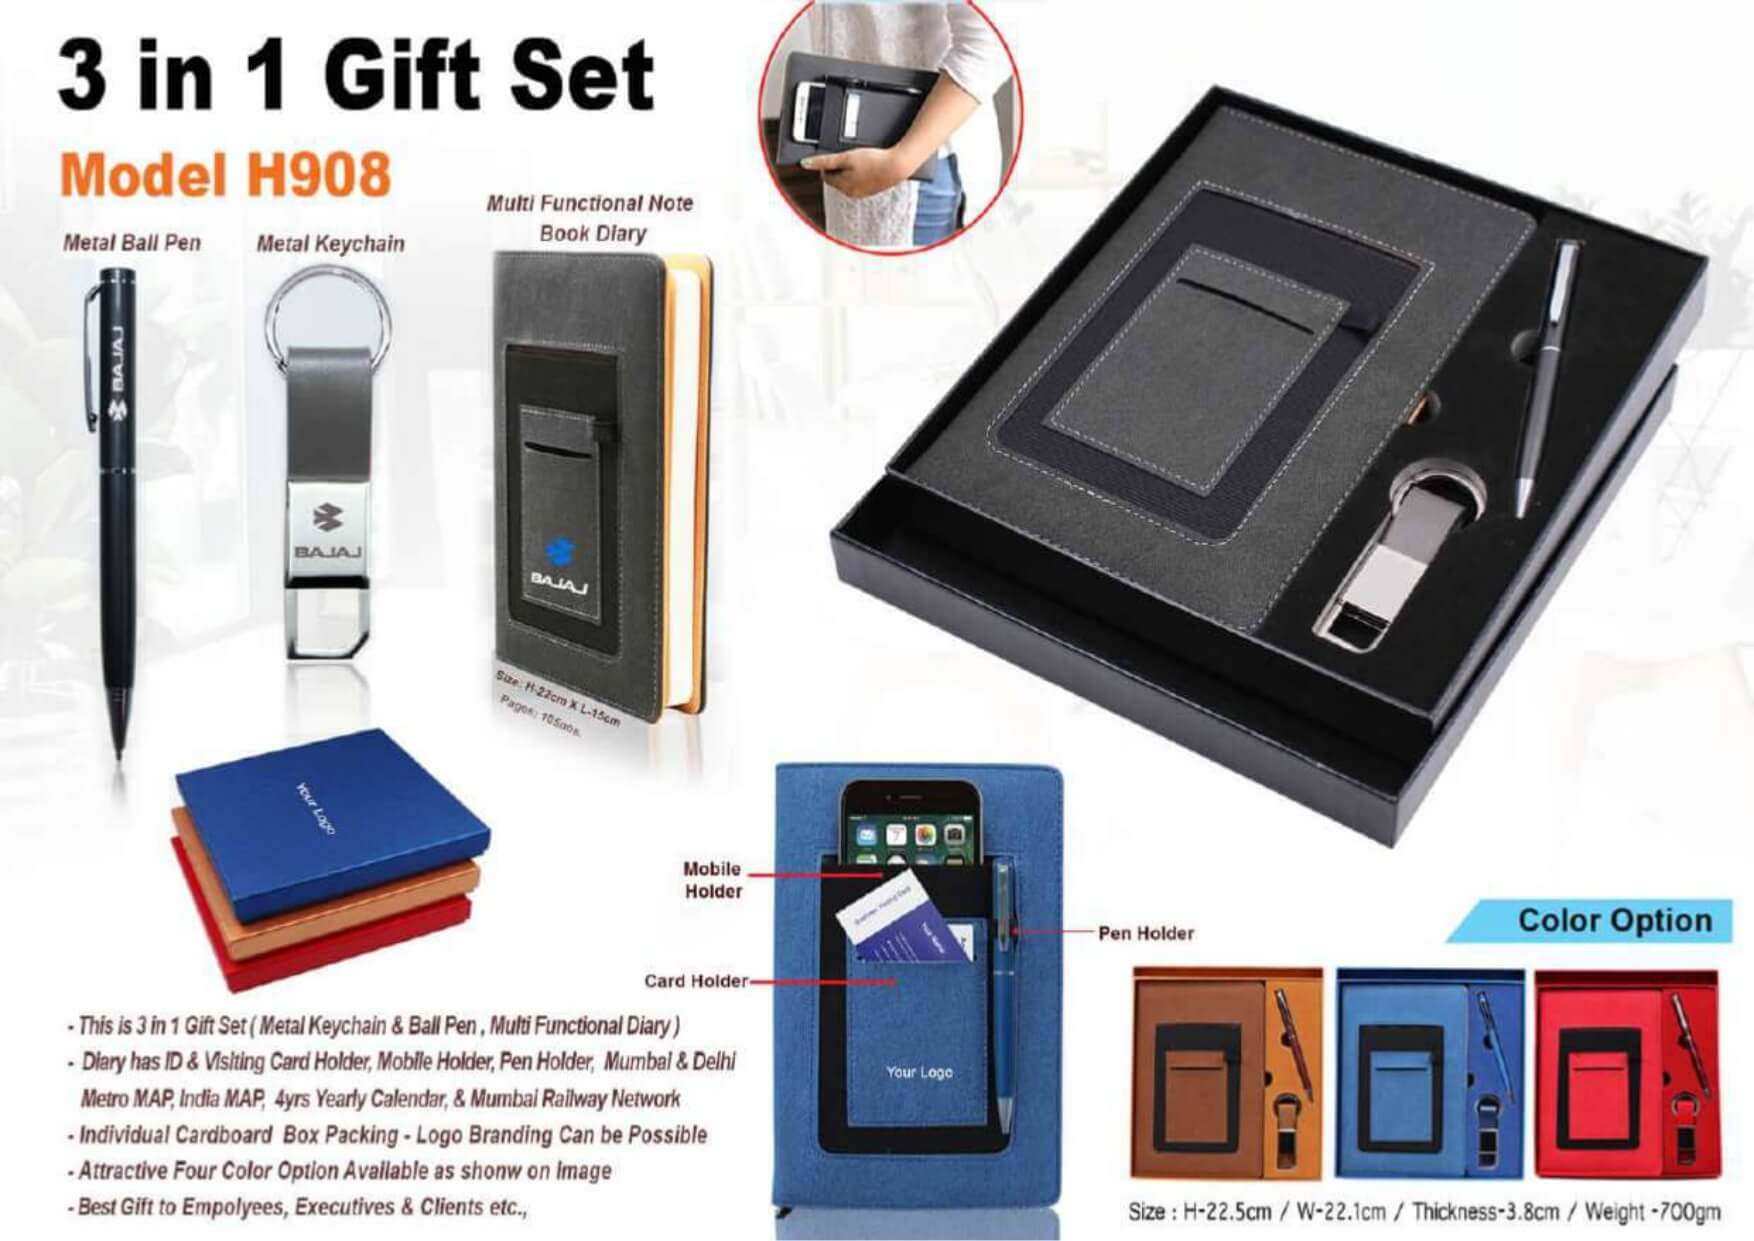 Pen, Keychain and Diary 3 in 1 Gift Set - 908